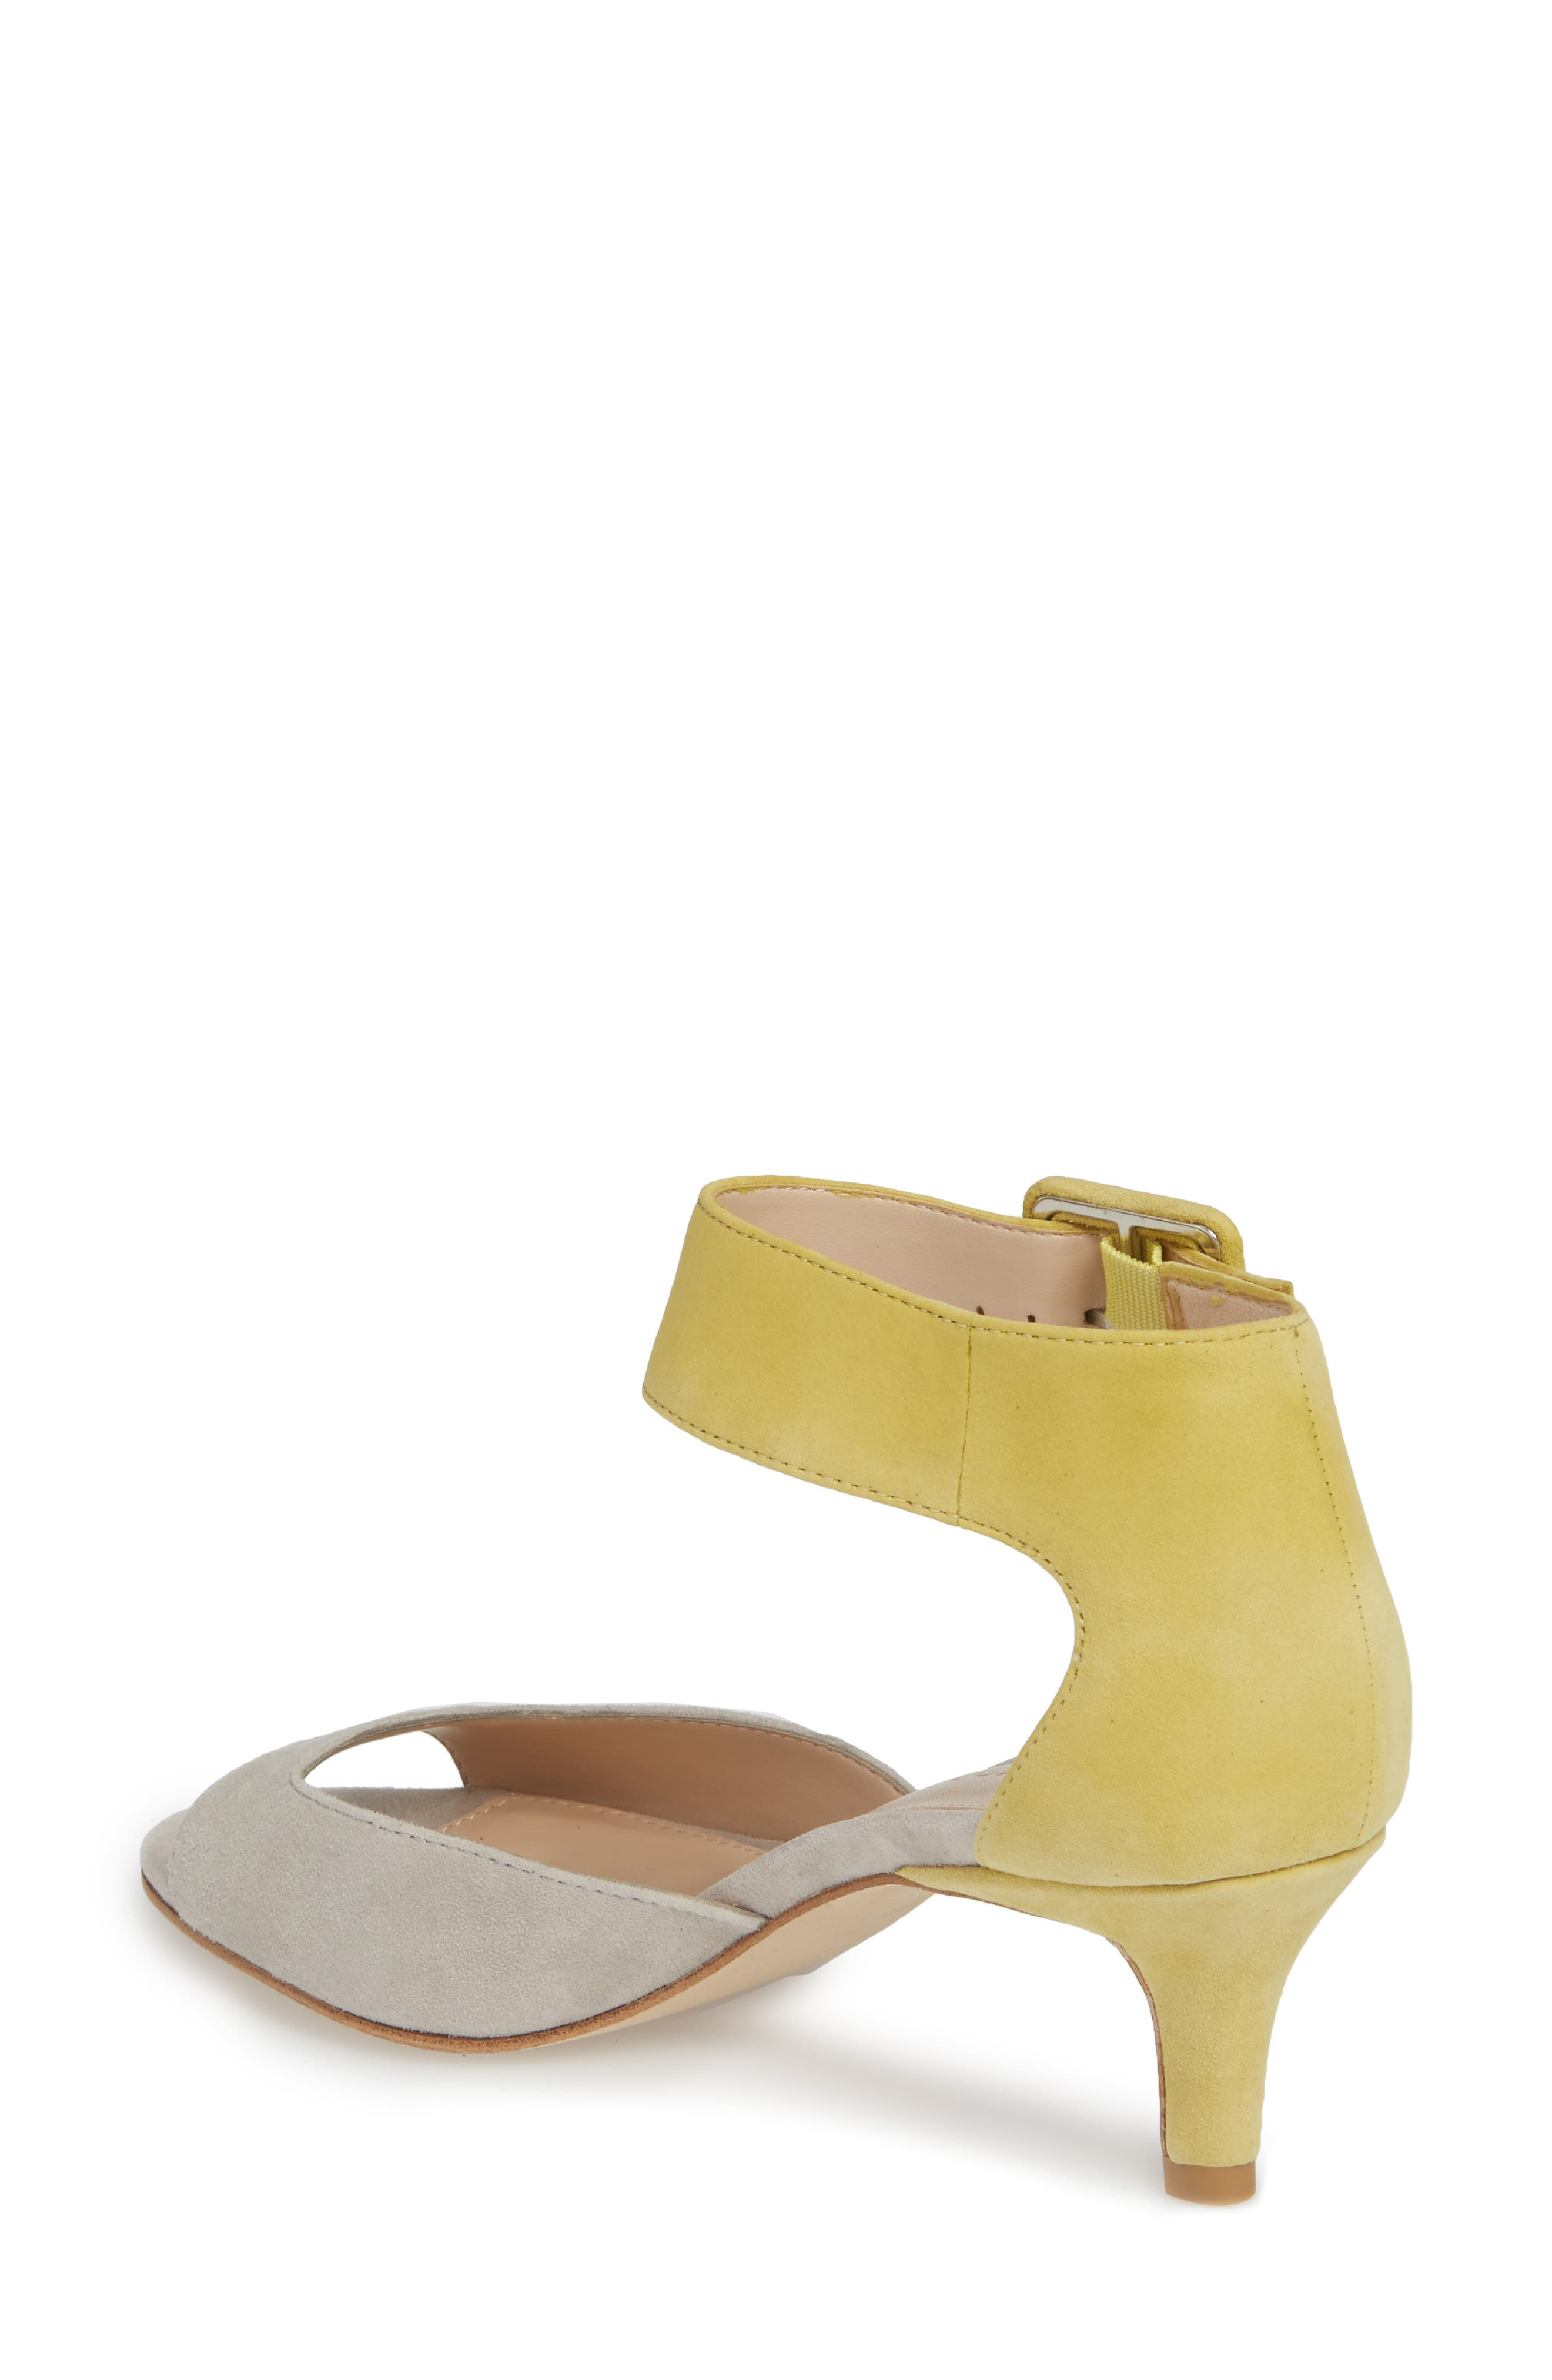 'Berlin' Ankle Strap Sandal,                             Alternate thumbnail 2, color,                             024